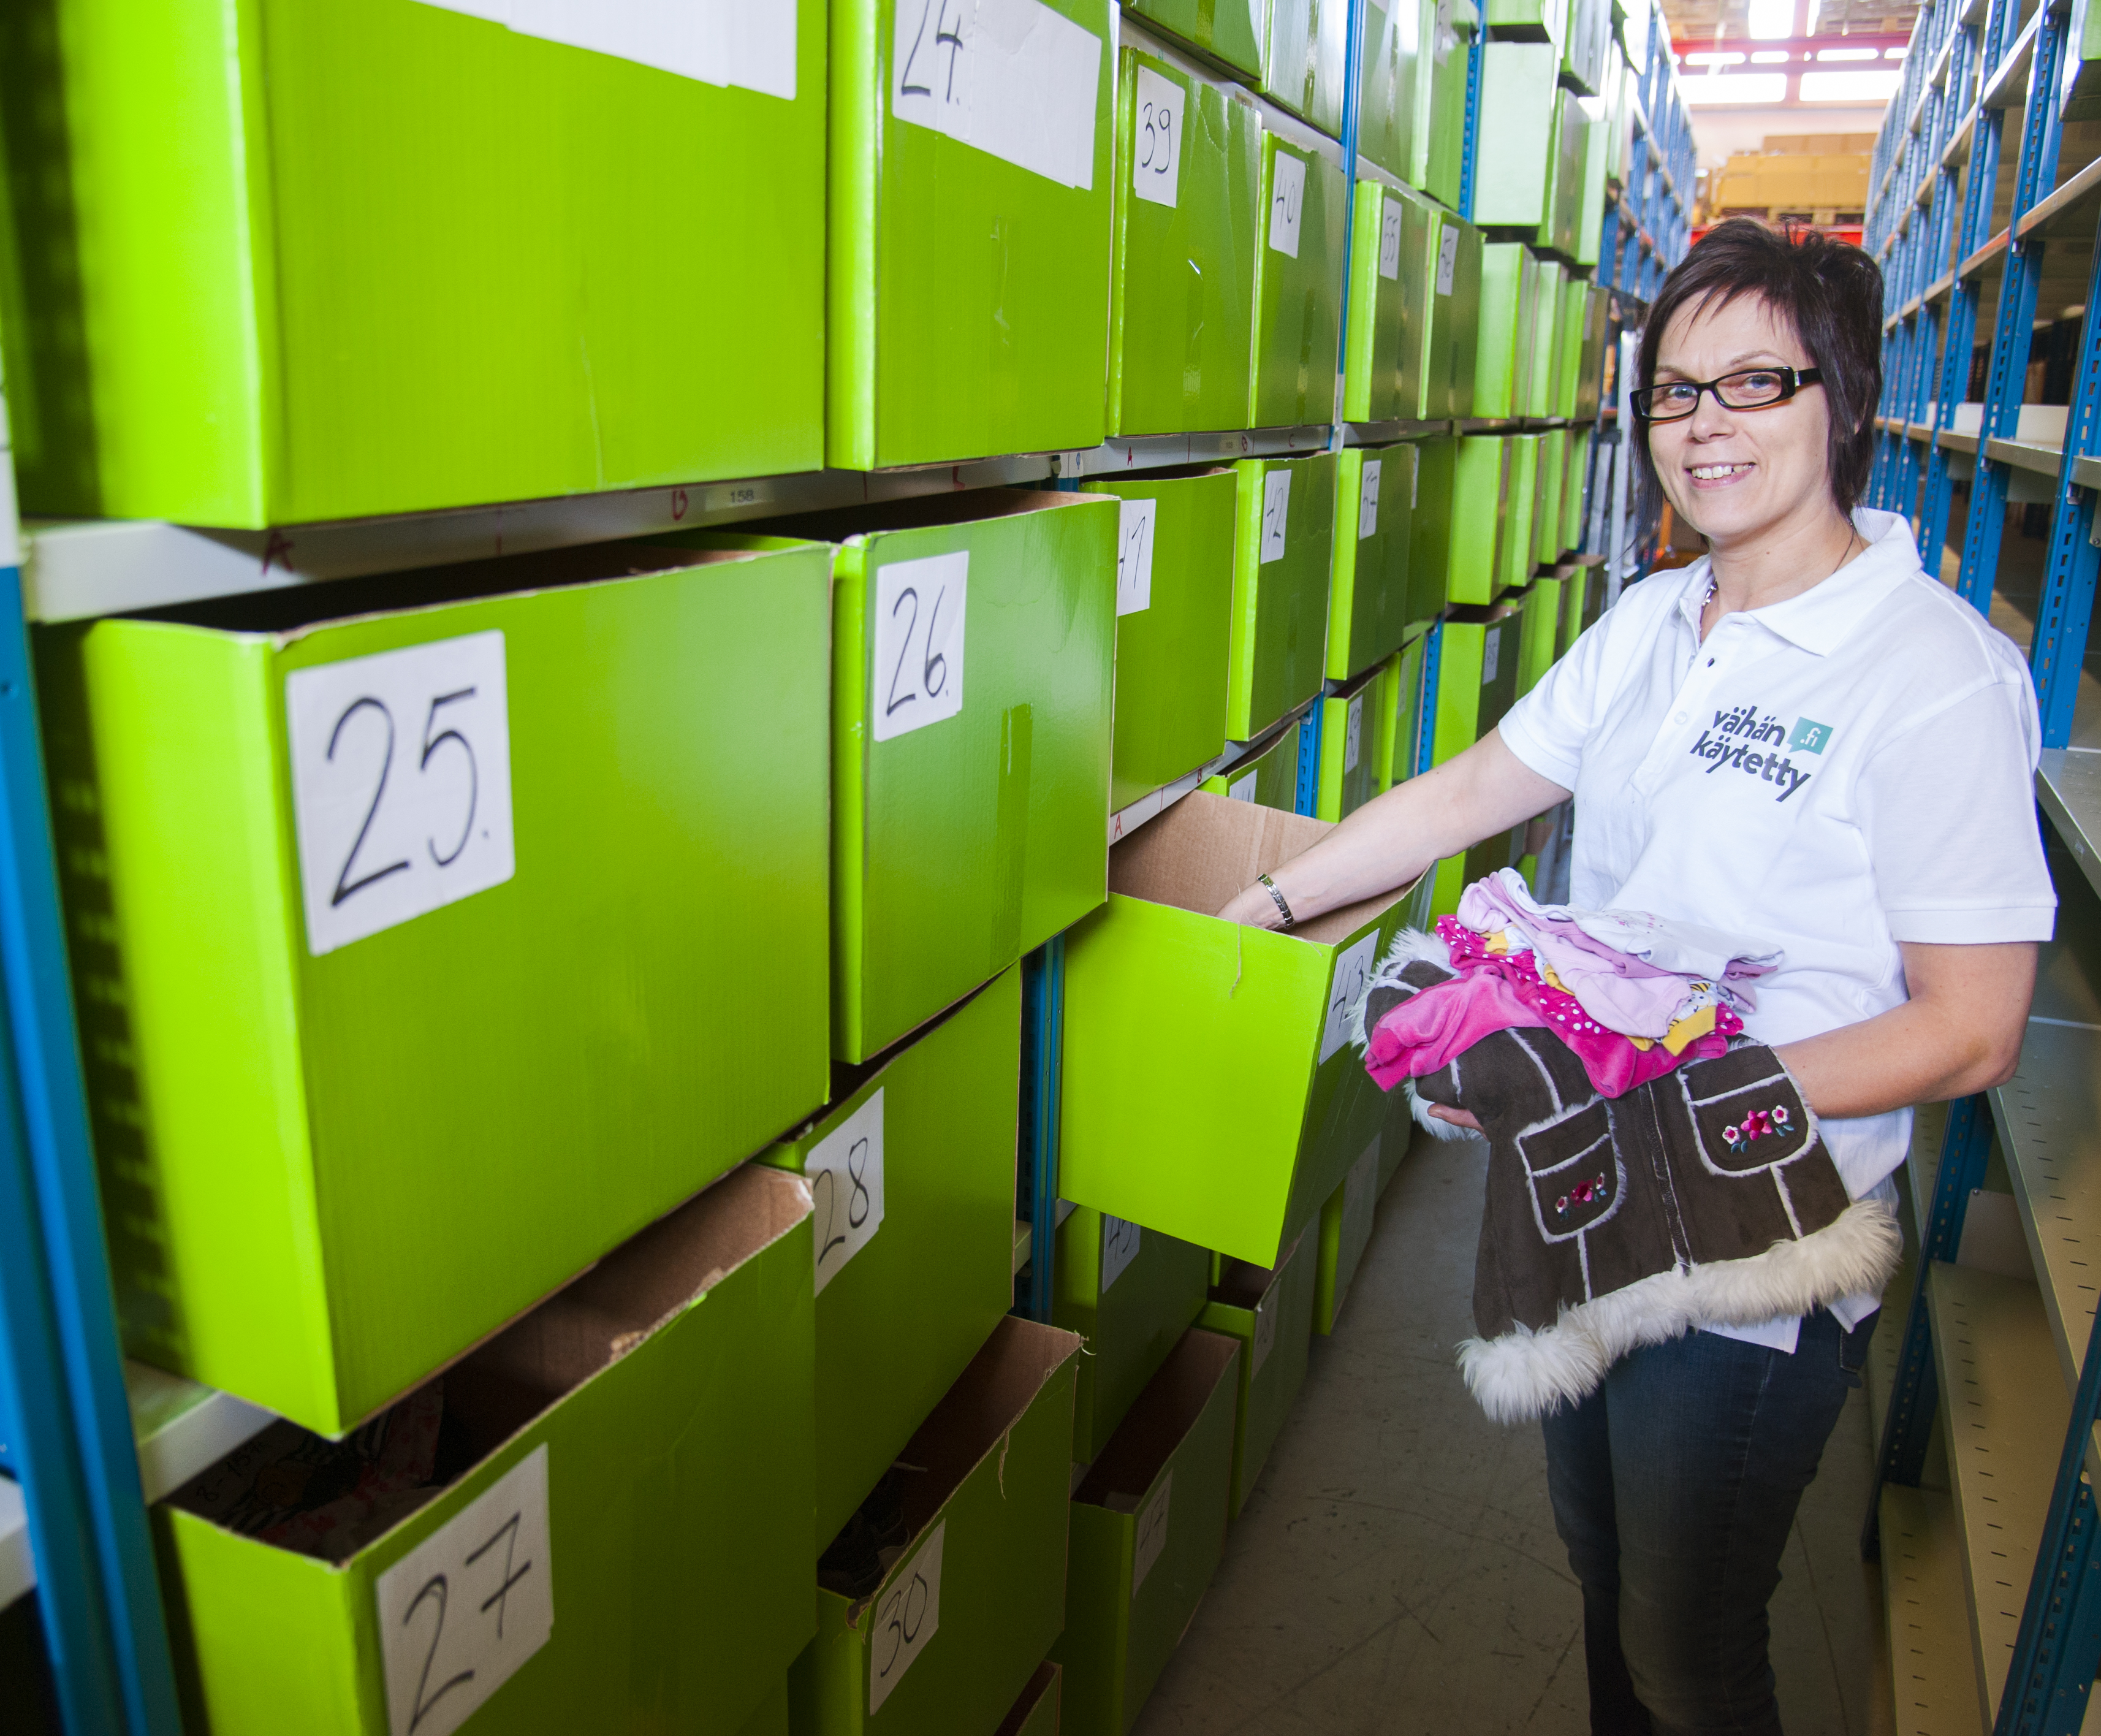 Tuula Karsikas at the Netflea storage in Oulu. Once a product arrives, it takes about 30 seconds for it to be placed on the right shelf.